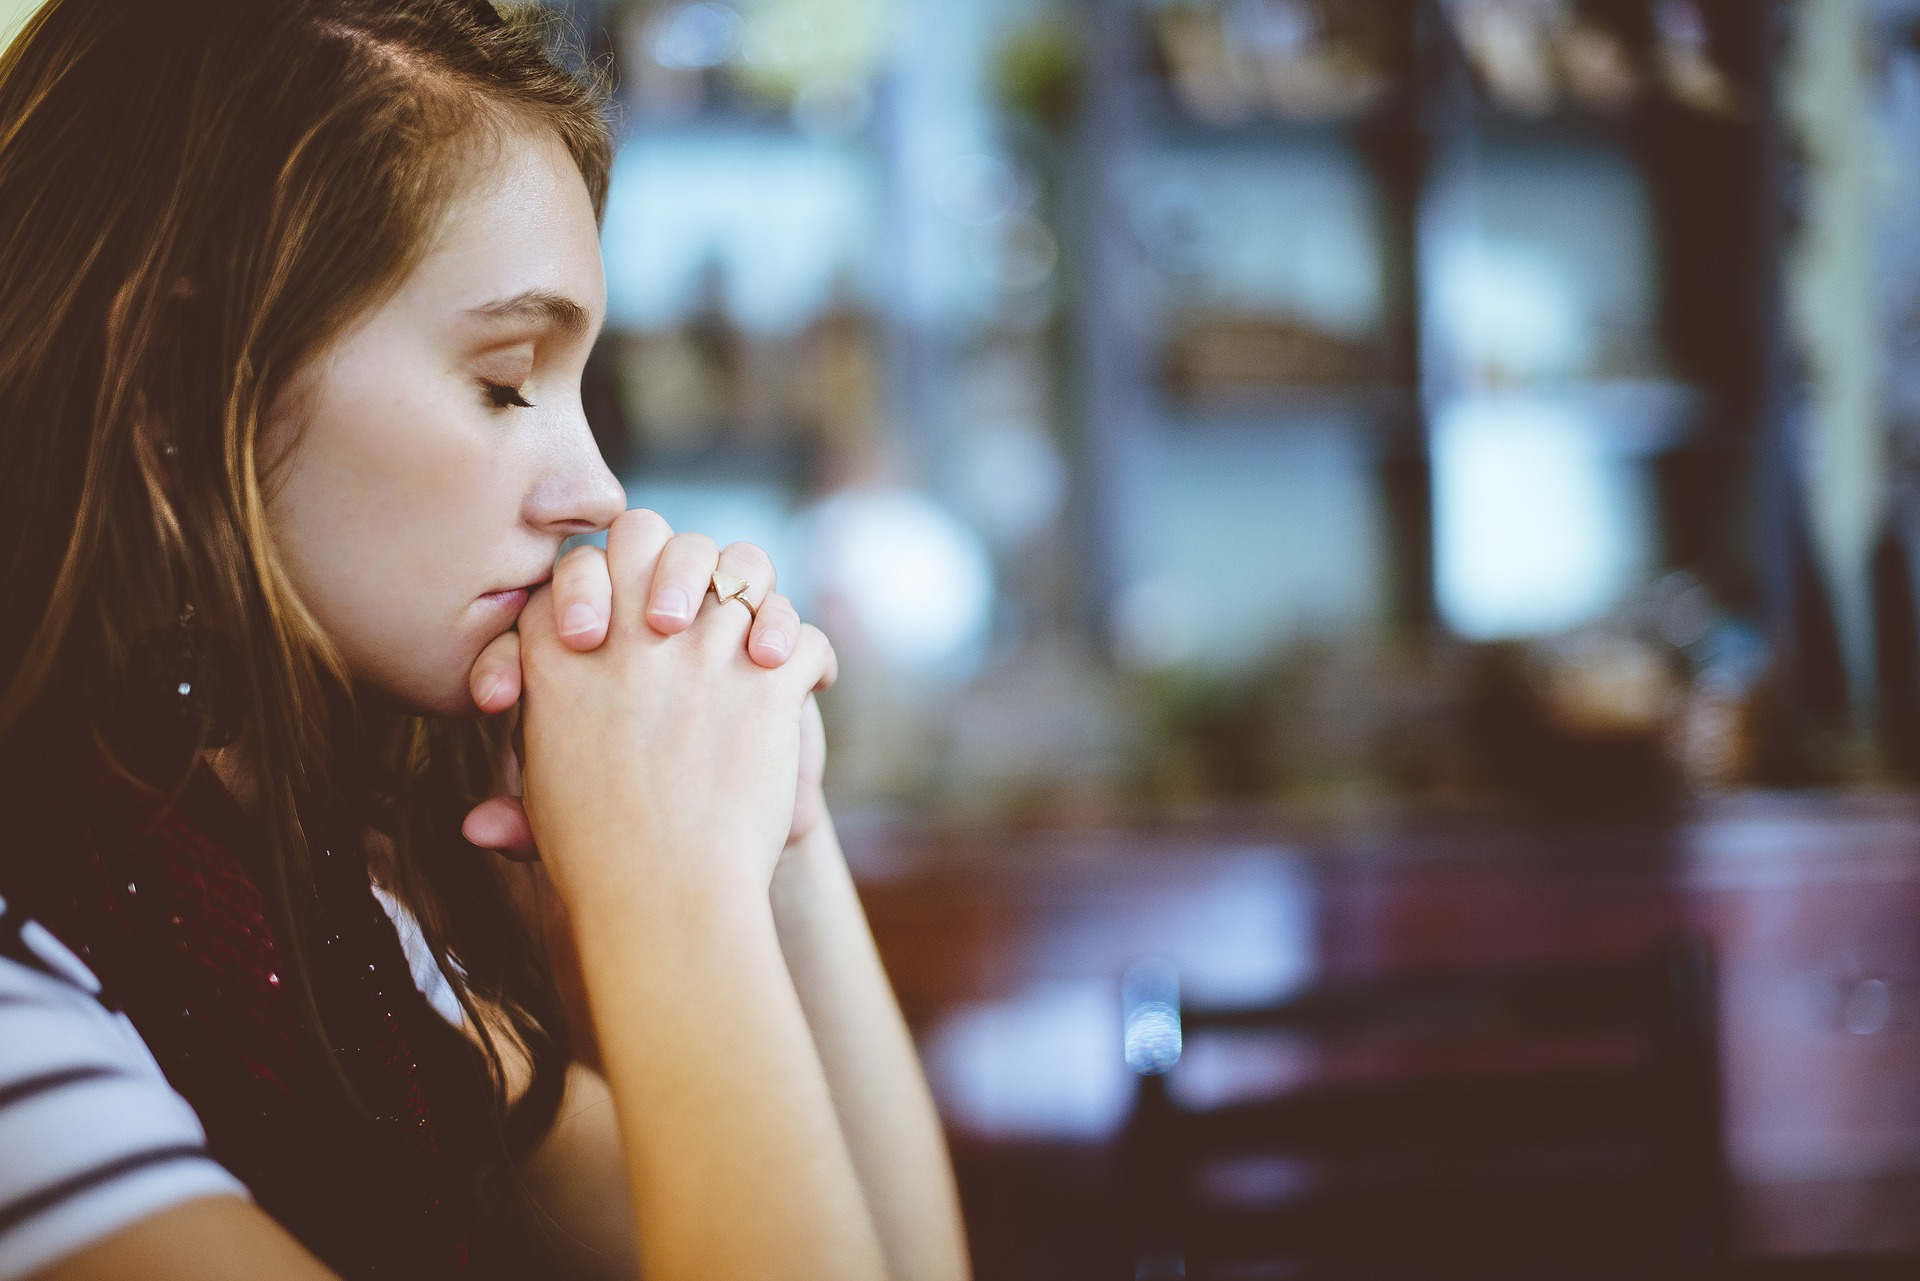 Girl praying for eating disorder recovery